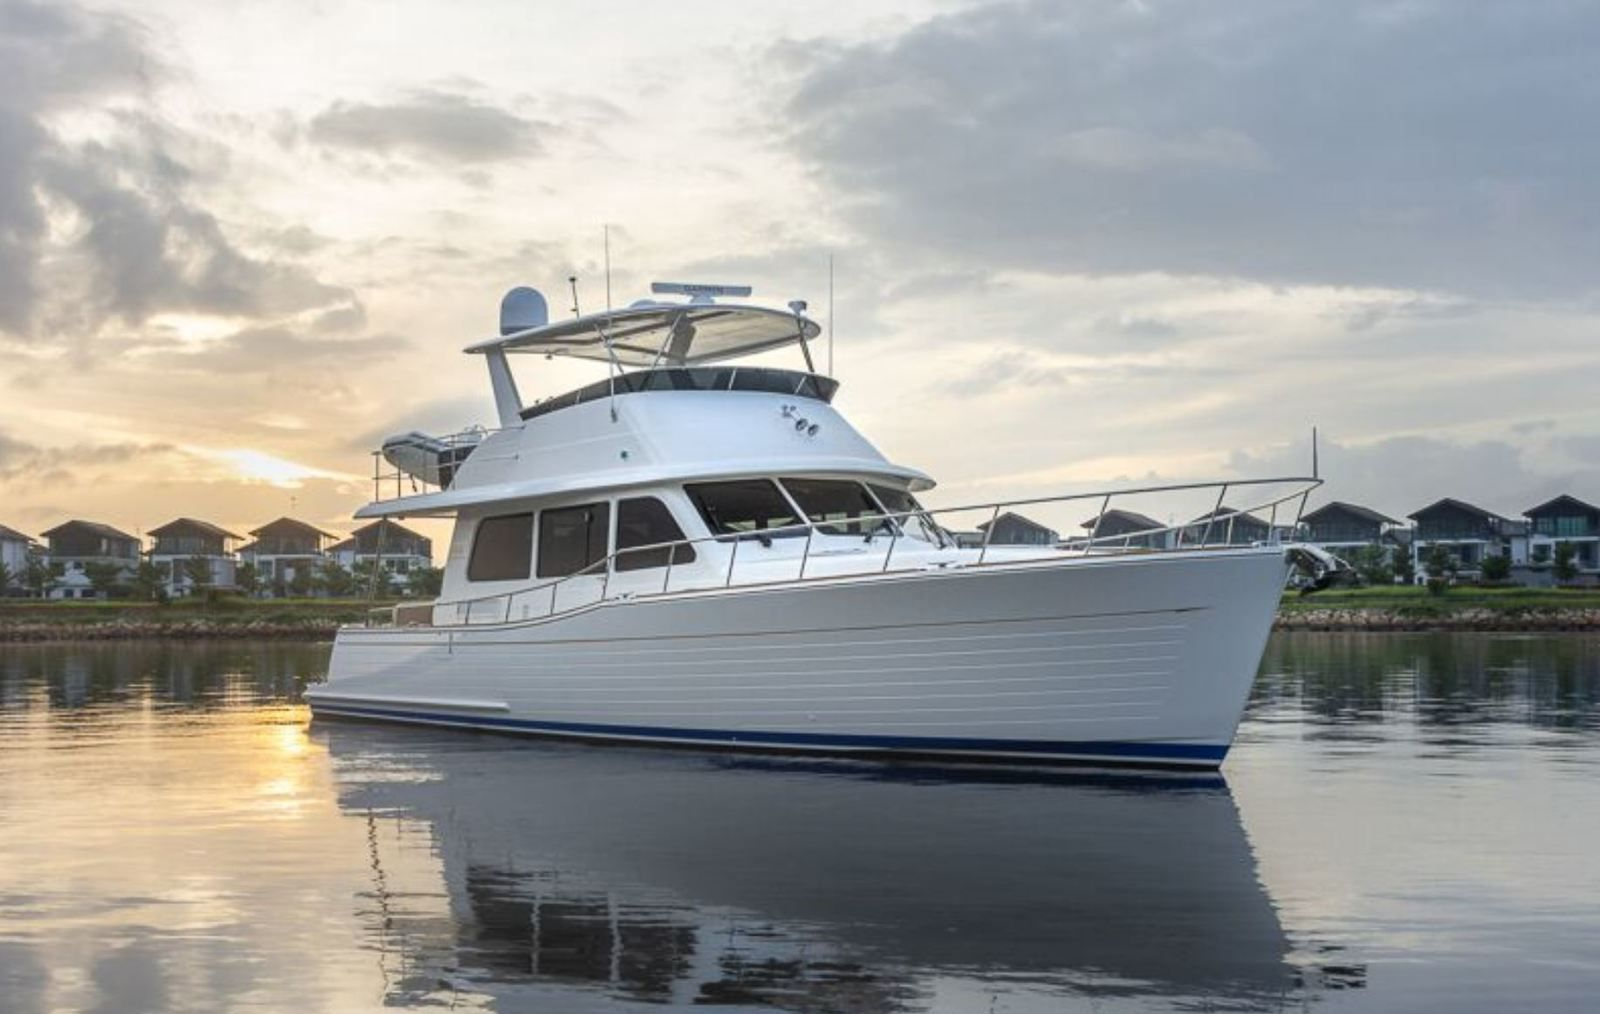 Grand Banks 54 unveiled at the 2020 Palm Beach International Boat Show